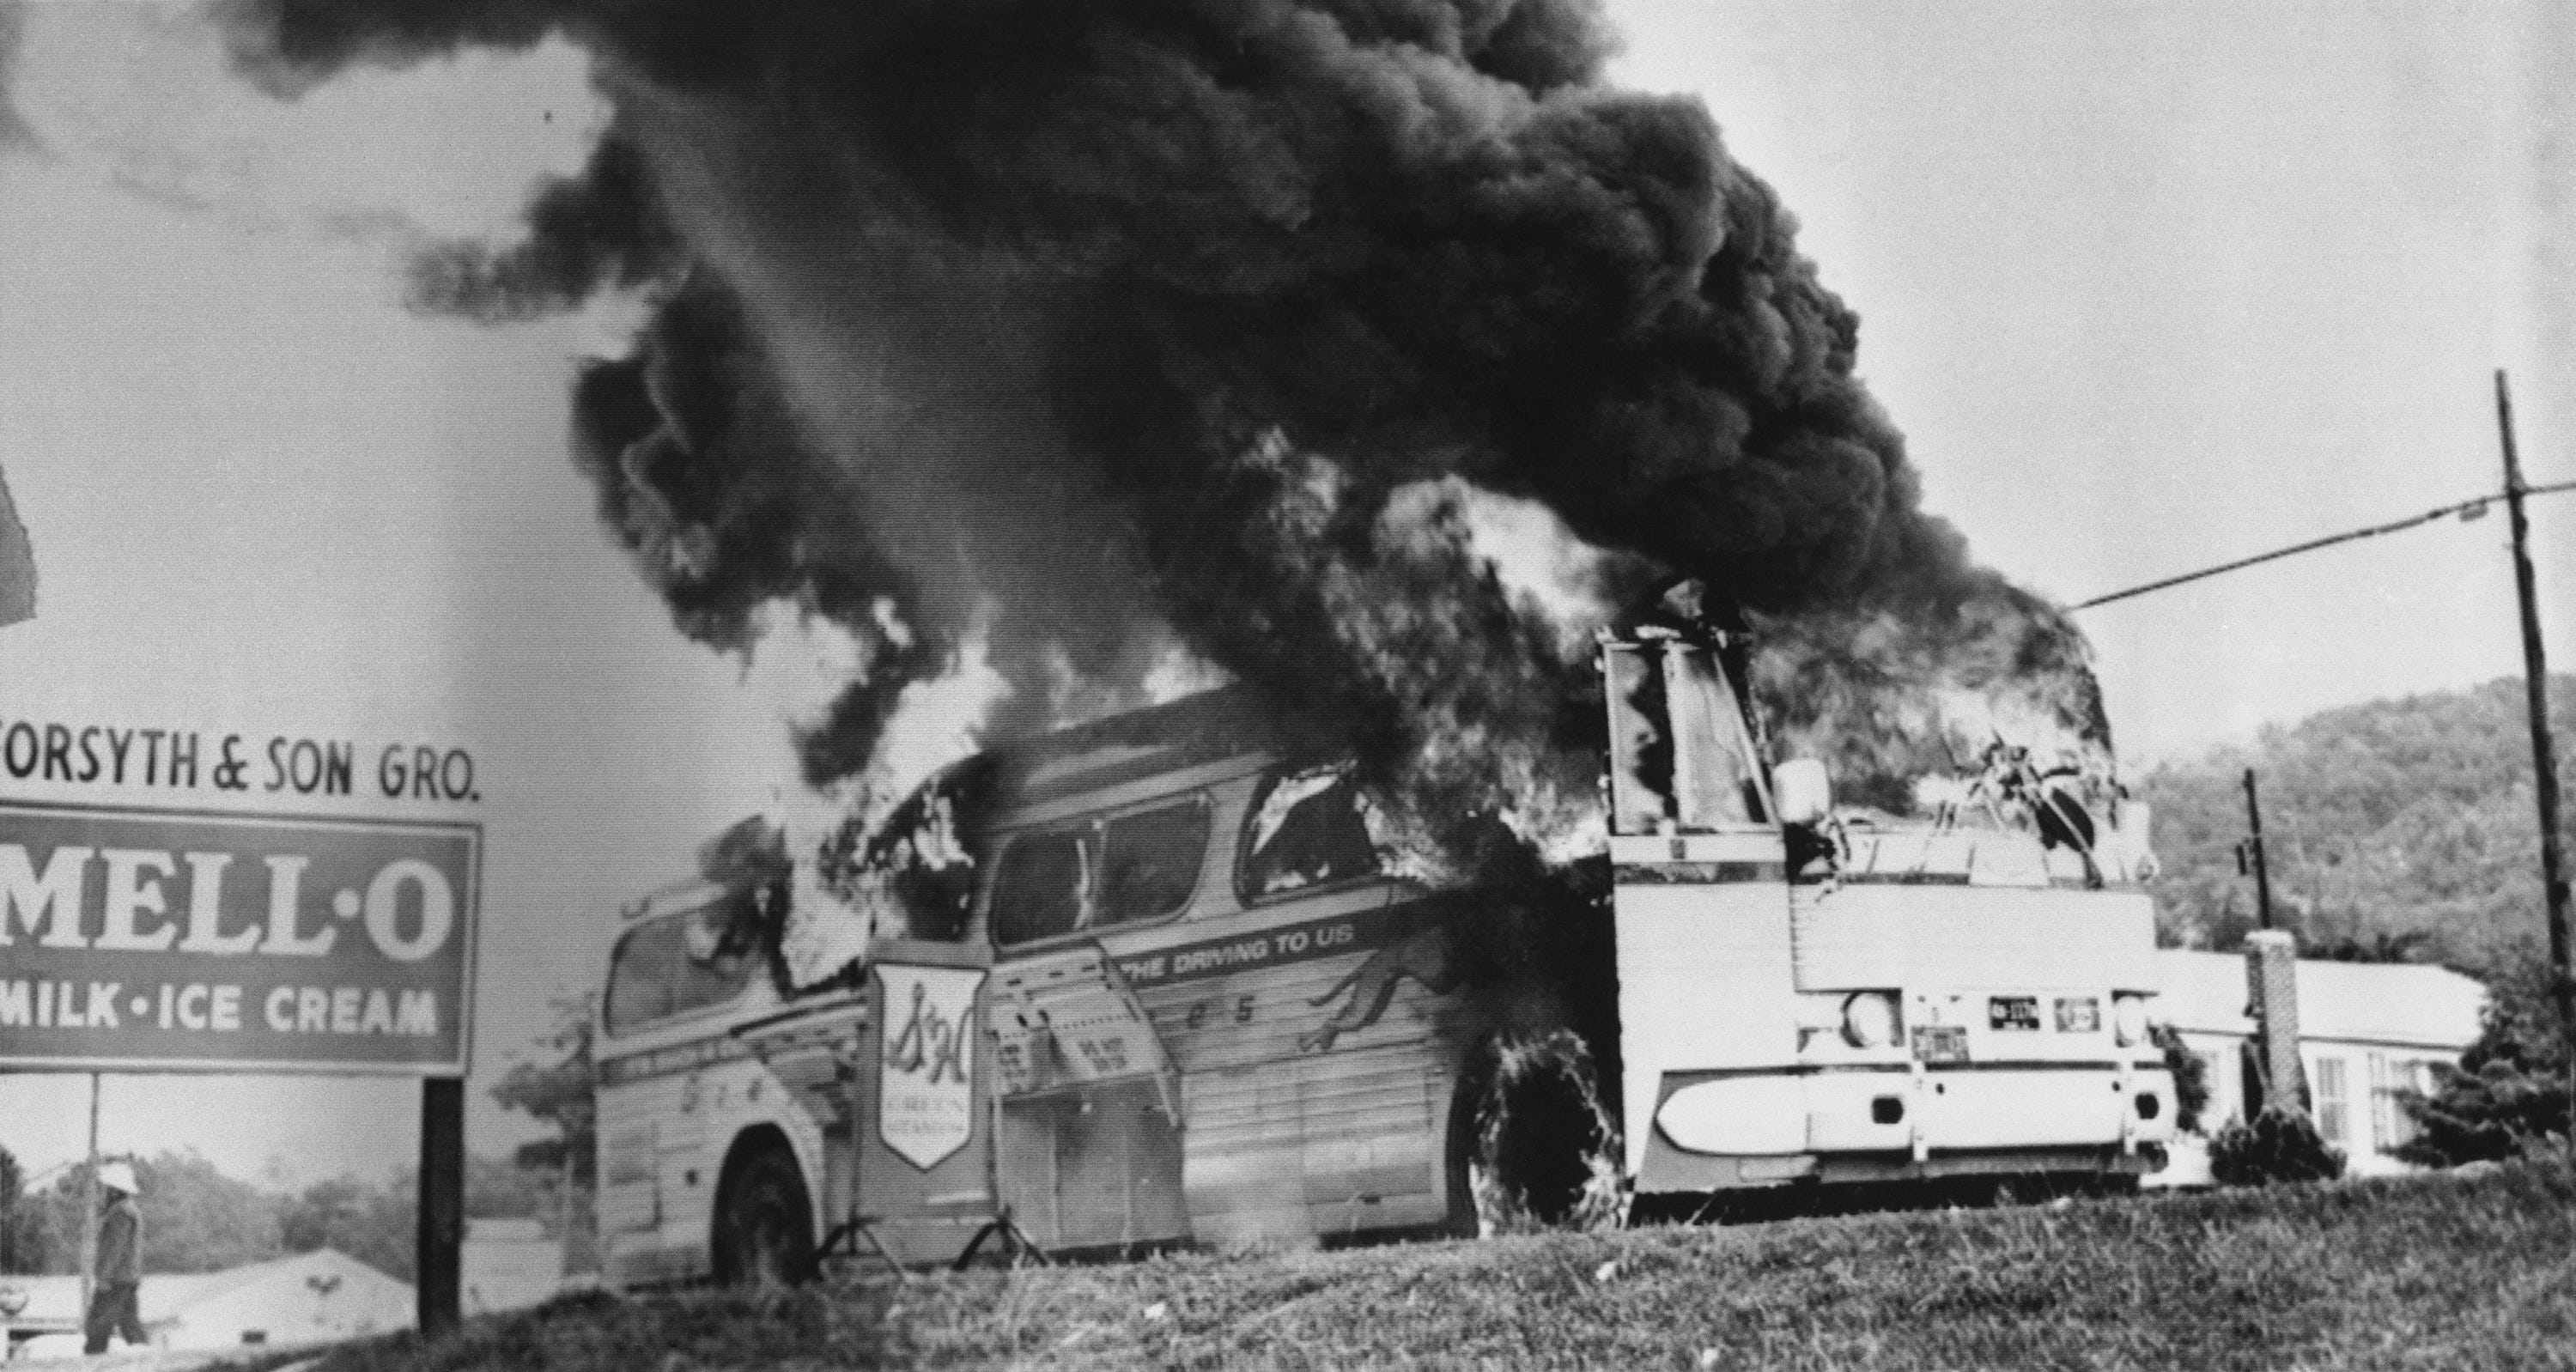 A Freedom Rider bus went up in flames when a firebomb was tossed through a broken window near Anniston, Ala., May 14, 1961. The bus, which was testing bus station segregation in the South, had stopped due to flat tires inflicted by a white mob at the Anniston bus station. Passengers escaped without serious injury, but endured beatings by a white mob that followed the bus as it left Anniston.